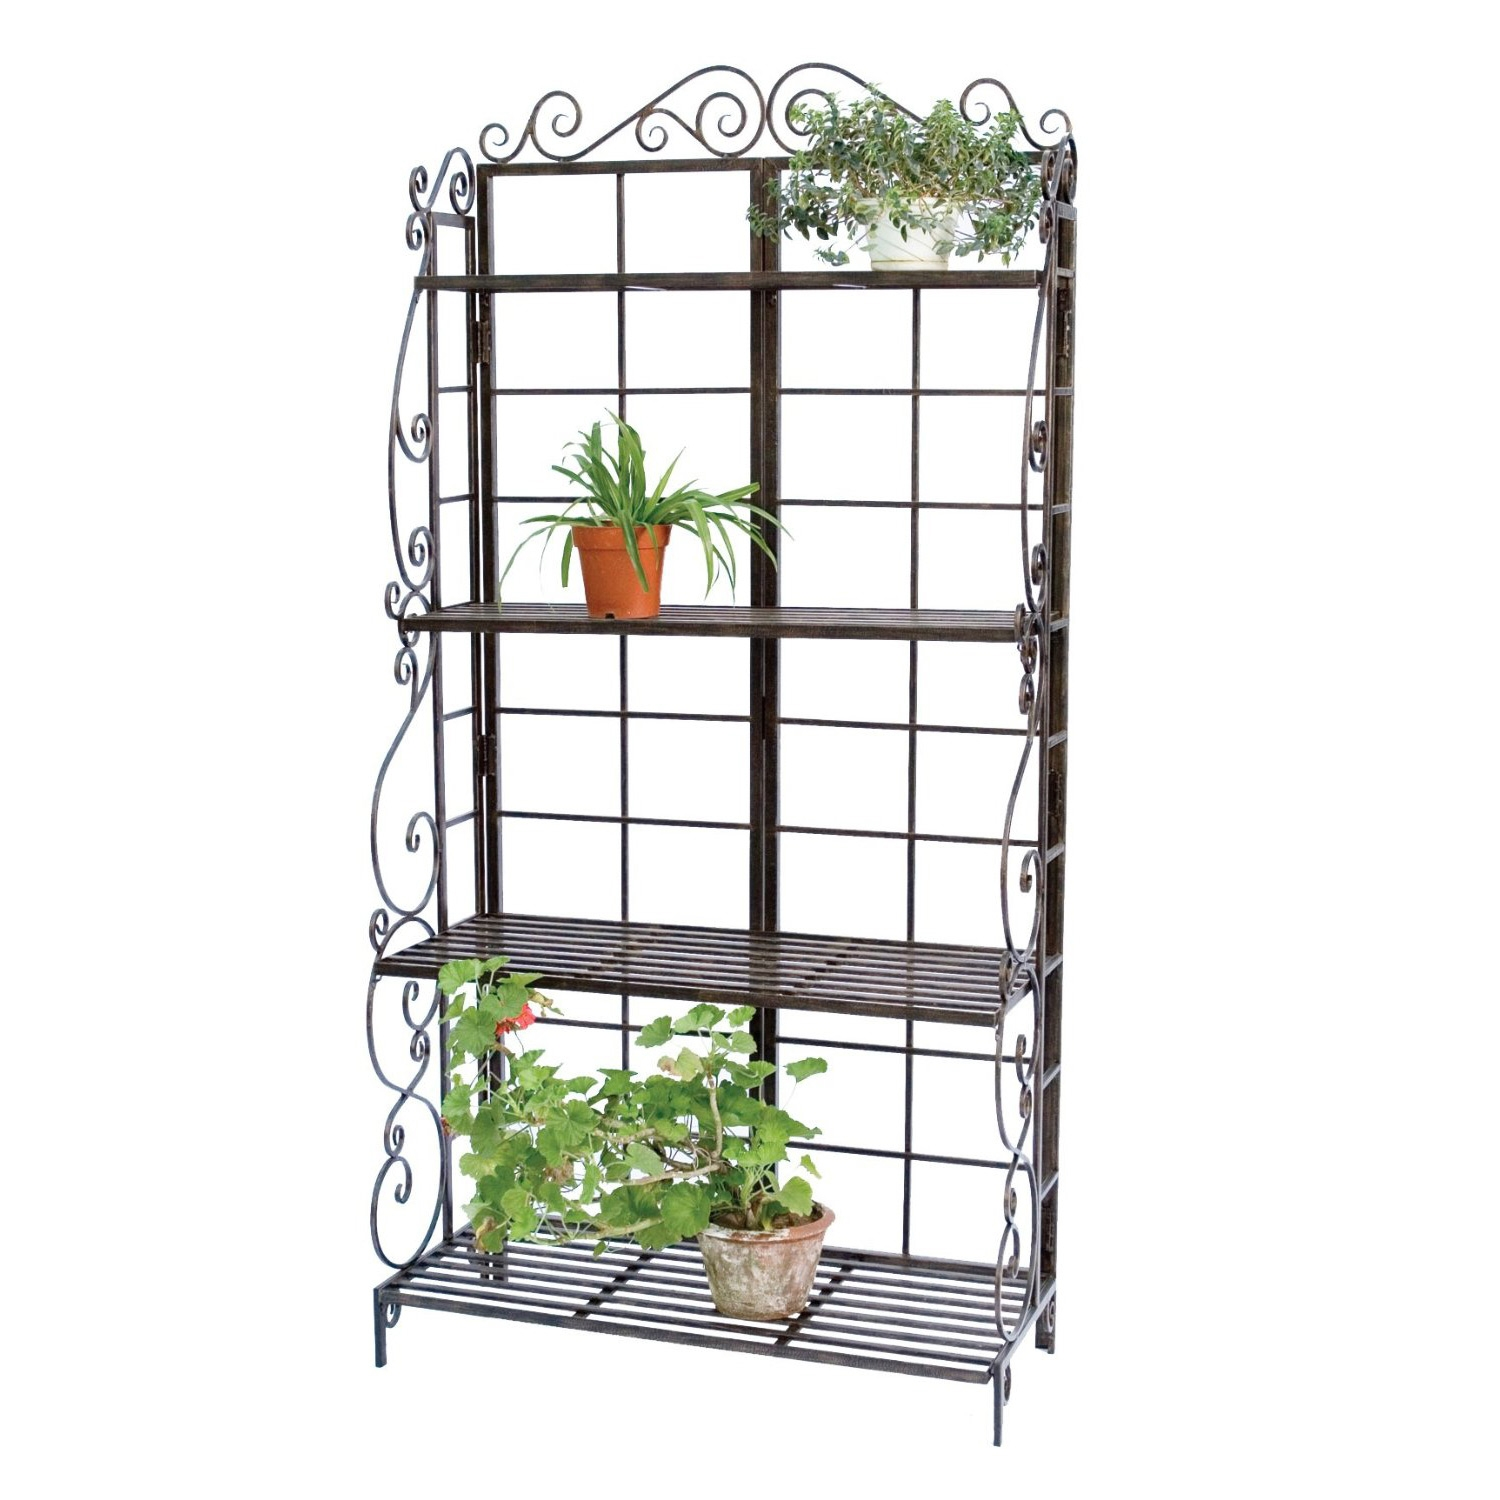 This Sturdy Metal Bakers Rack Plant Stand in Brushed Bronze Black has four shelves which create storage or display room for several potted plants and garden ornaments. The two bottom shelves are 16 Inches wide, for larger pots or tools, while the third shelf, at 12.5 Inches wide, can accommodate items 11 Inches or smaller in diameter. The 9.25 Inches wide top shelf holds small pots, while its unobstructed top allows your plants to grow tall. Powder coated finish; Made of steel and metal construction will withstand the elements, for a sturdy holder year after year.